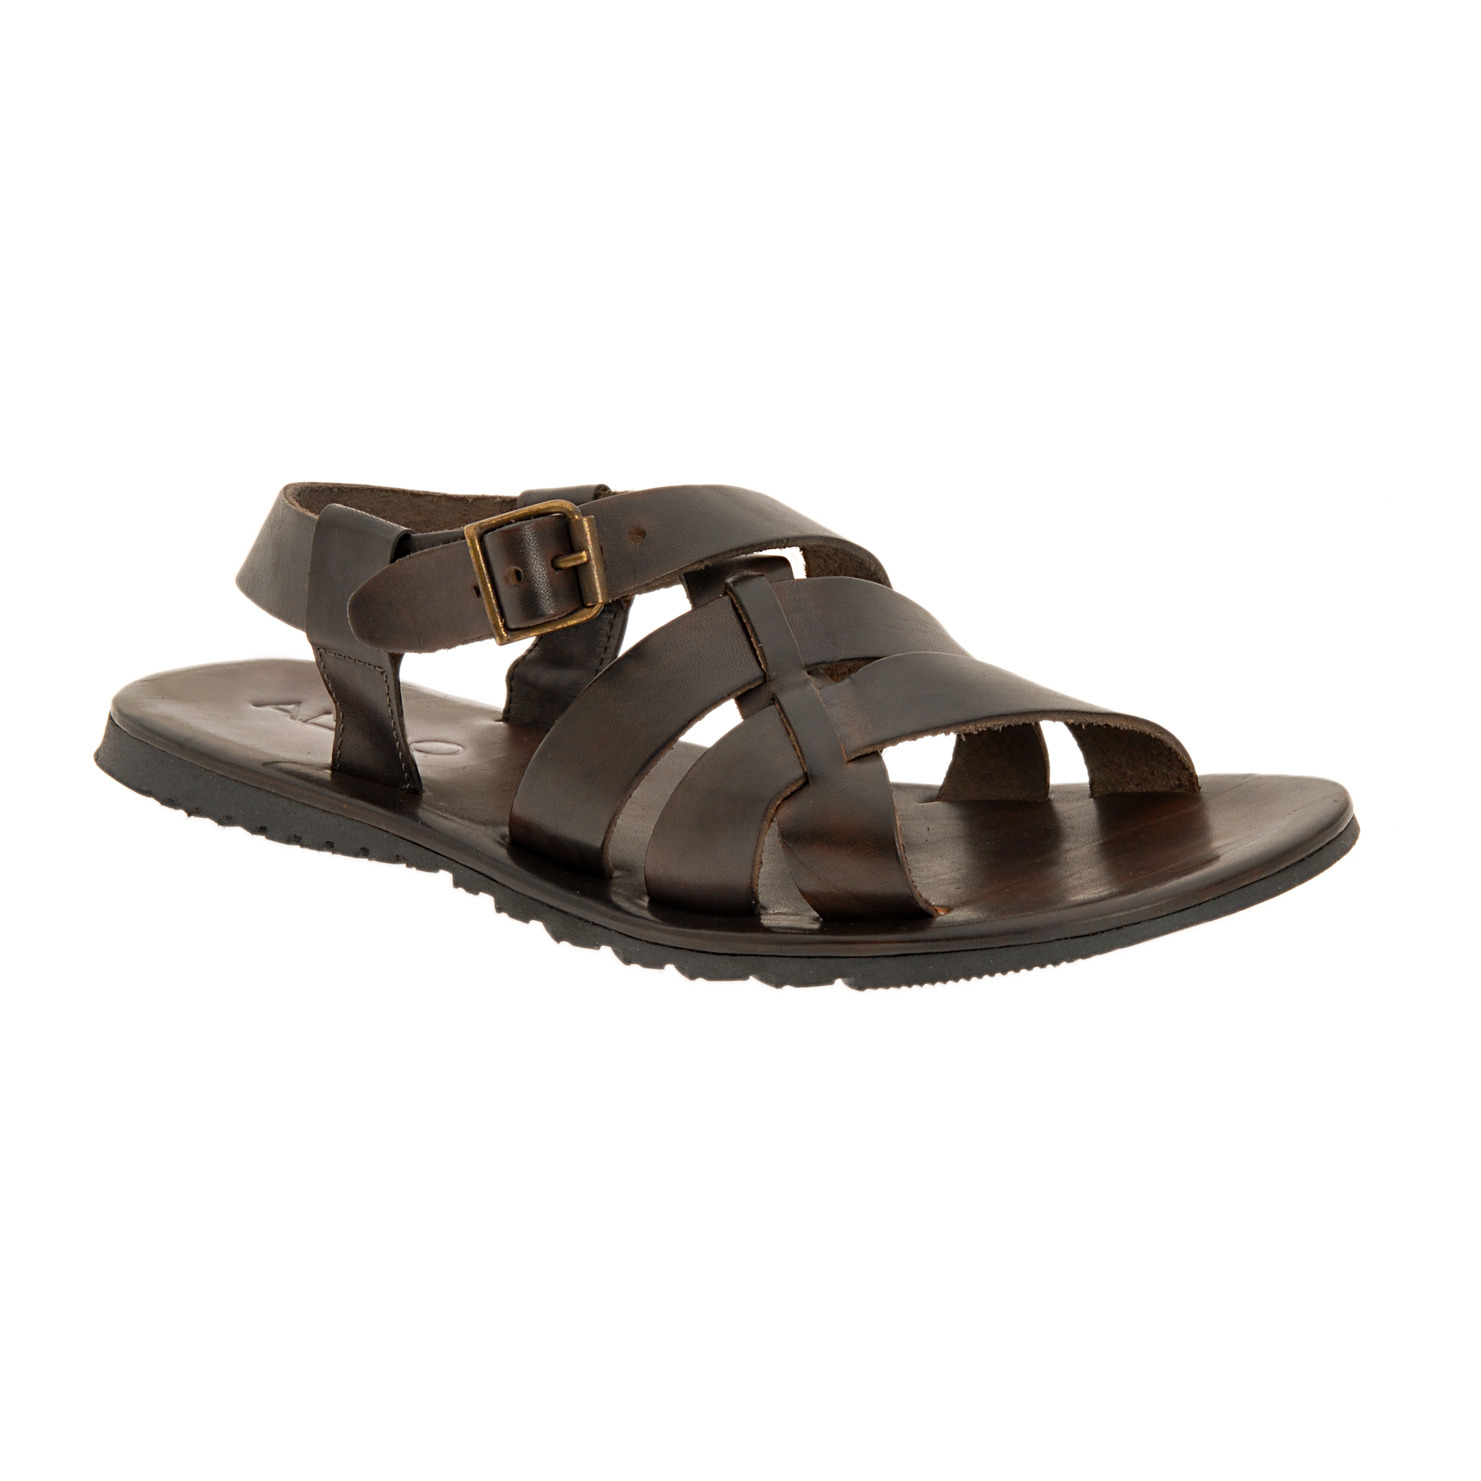 The Fancy Times: Fancy Men's Sandals under $100